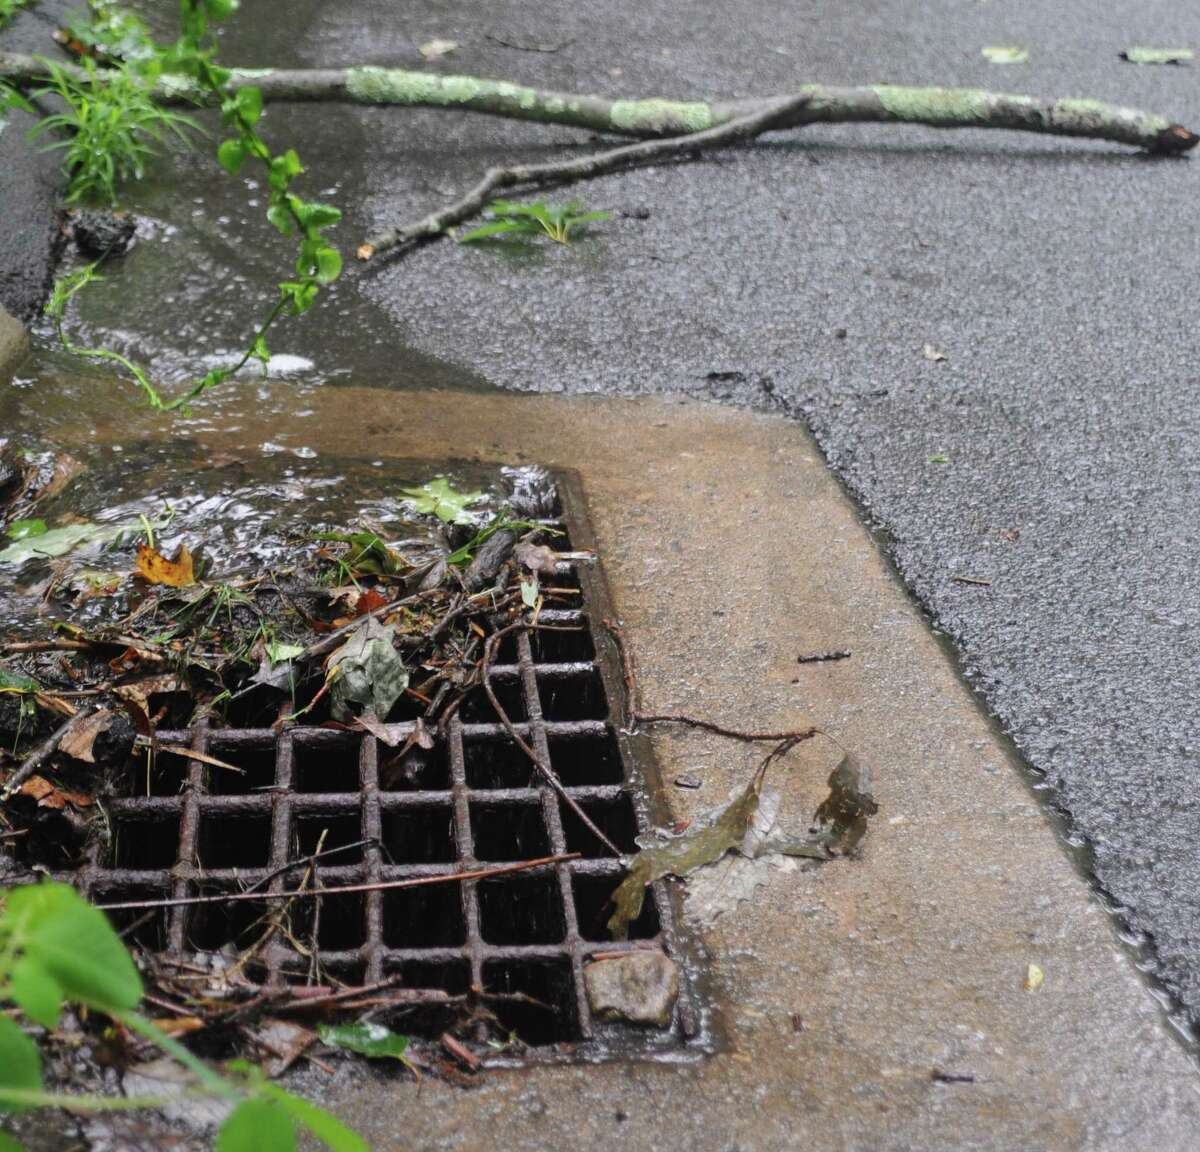 The handling of storm runoff from development projects n Ridgefield will be governed by a new set of regulations approved by the Planning and Zoning Commission.